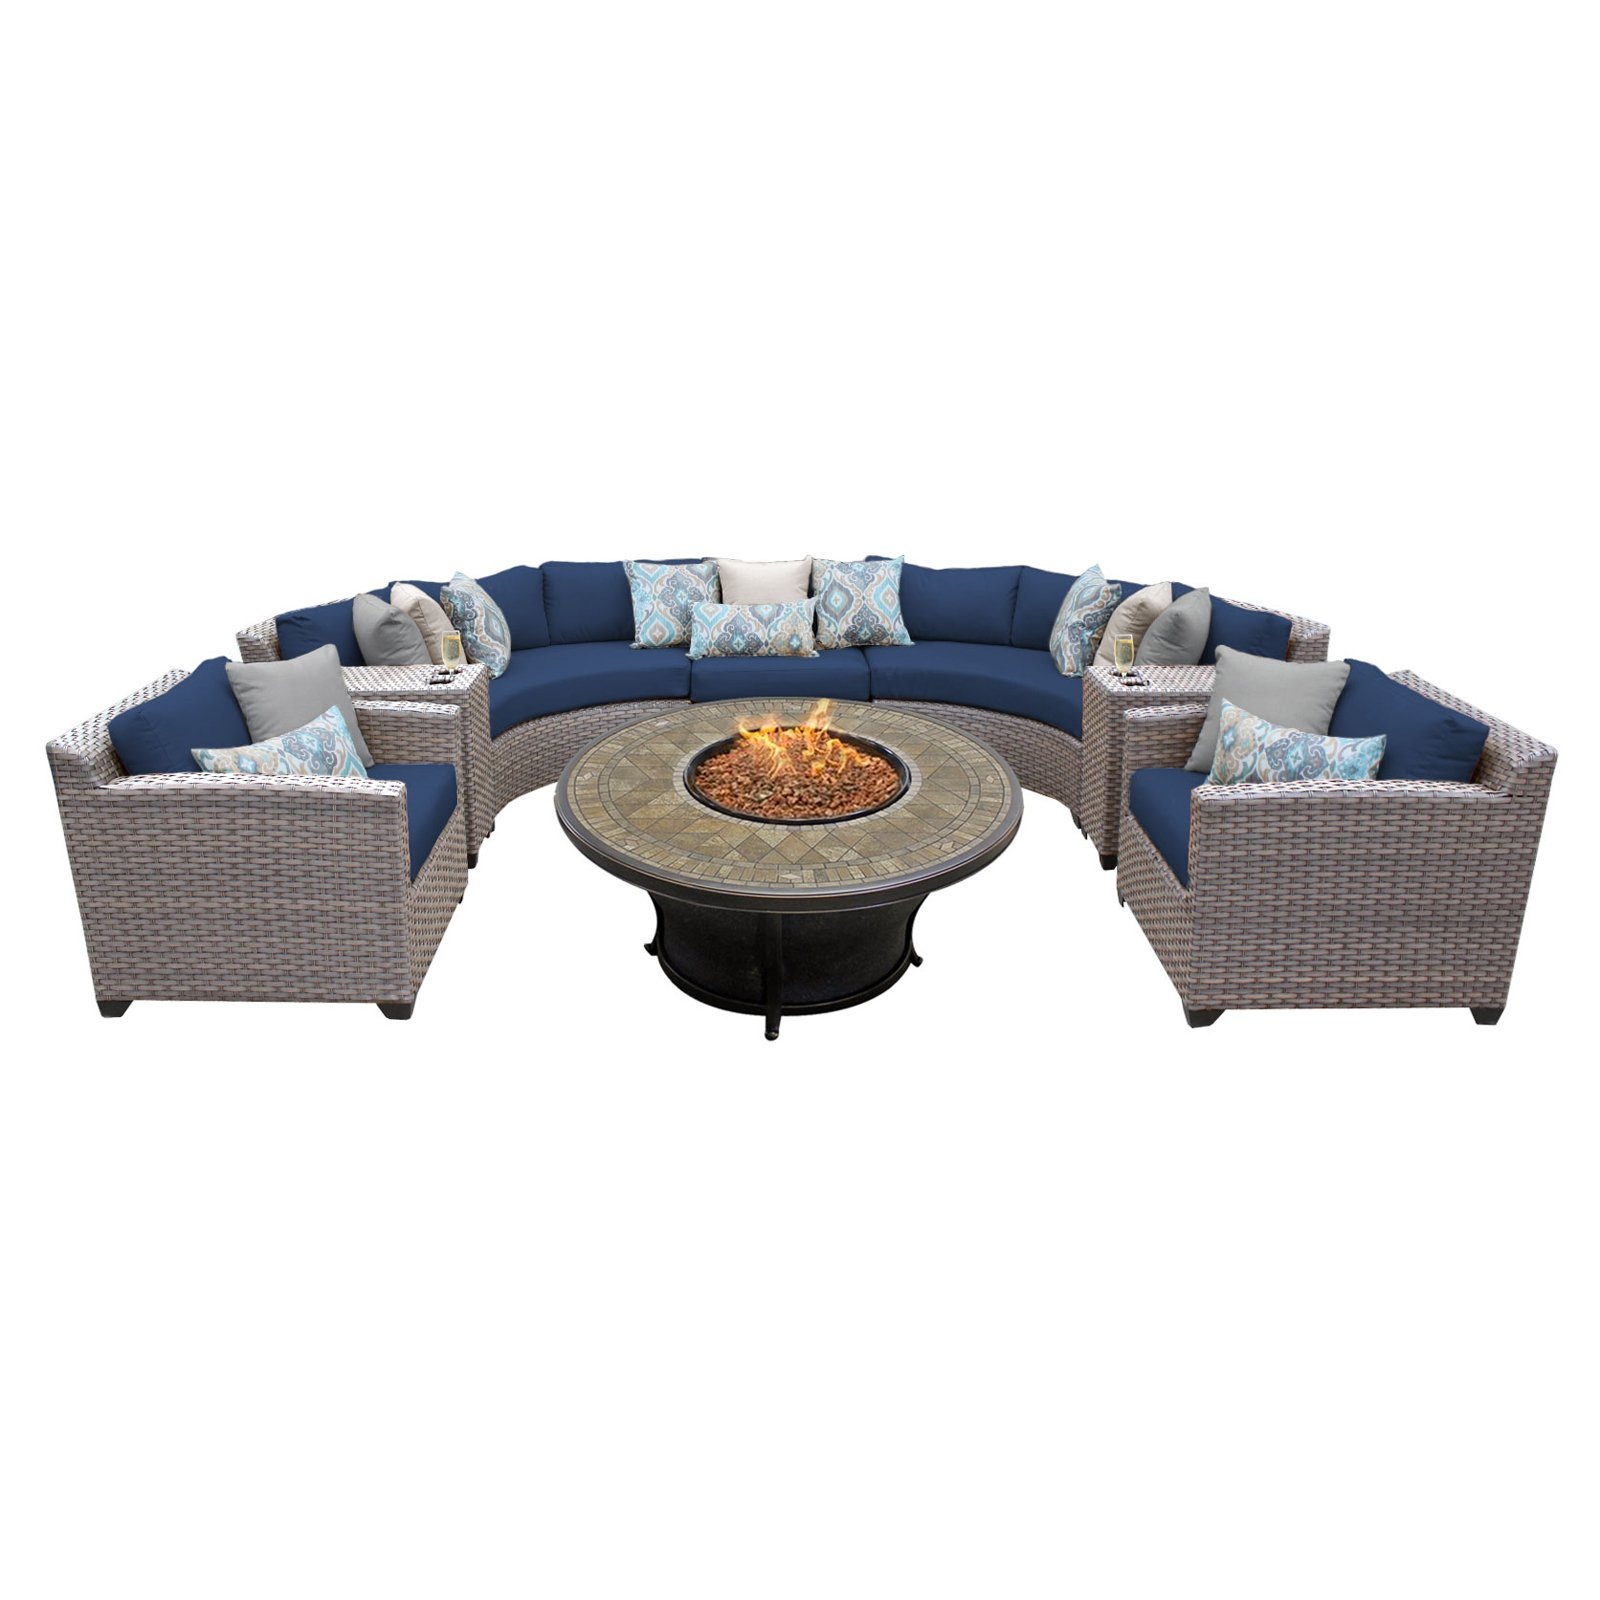 TK Classics Florence Wicker 8 Piece Patio Conversation Set with Fire Pit Table and 2 Sets of Cushion Covers